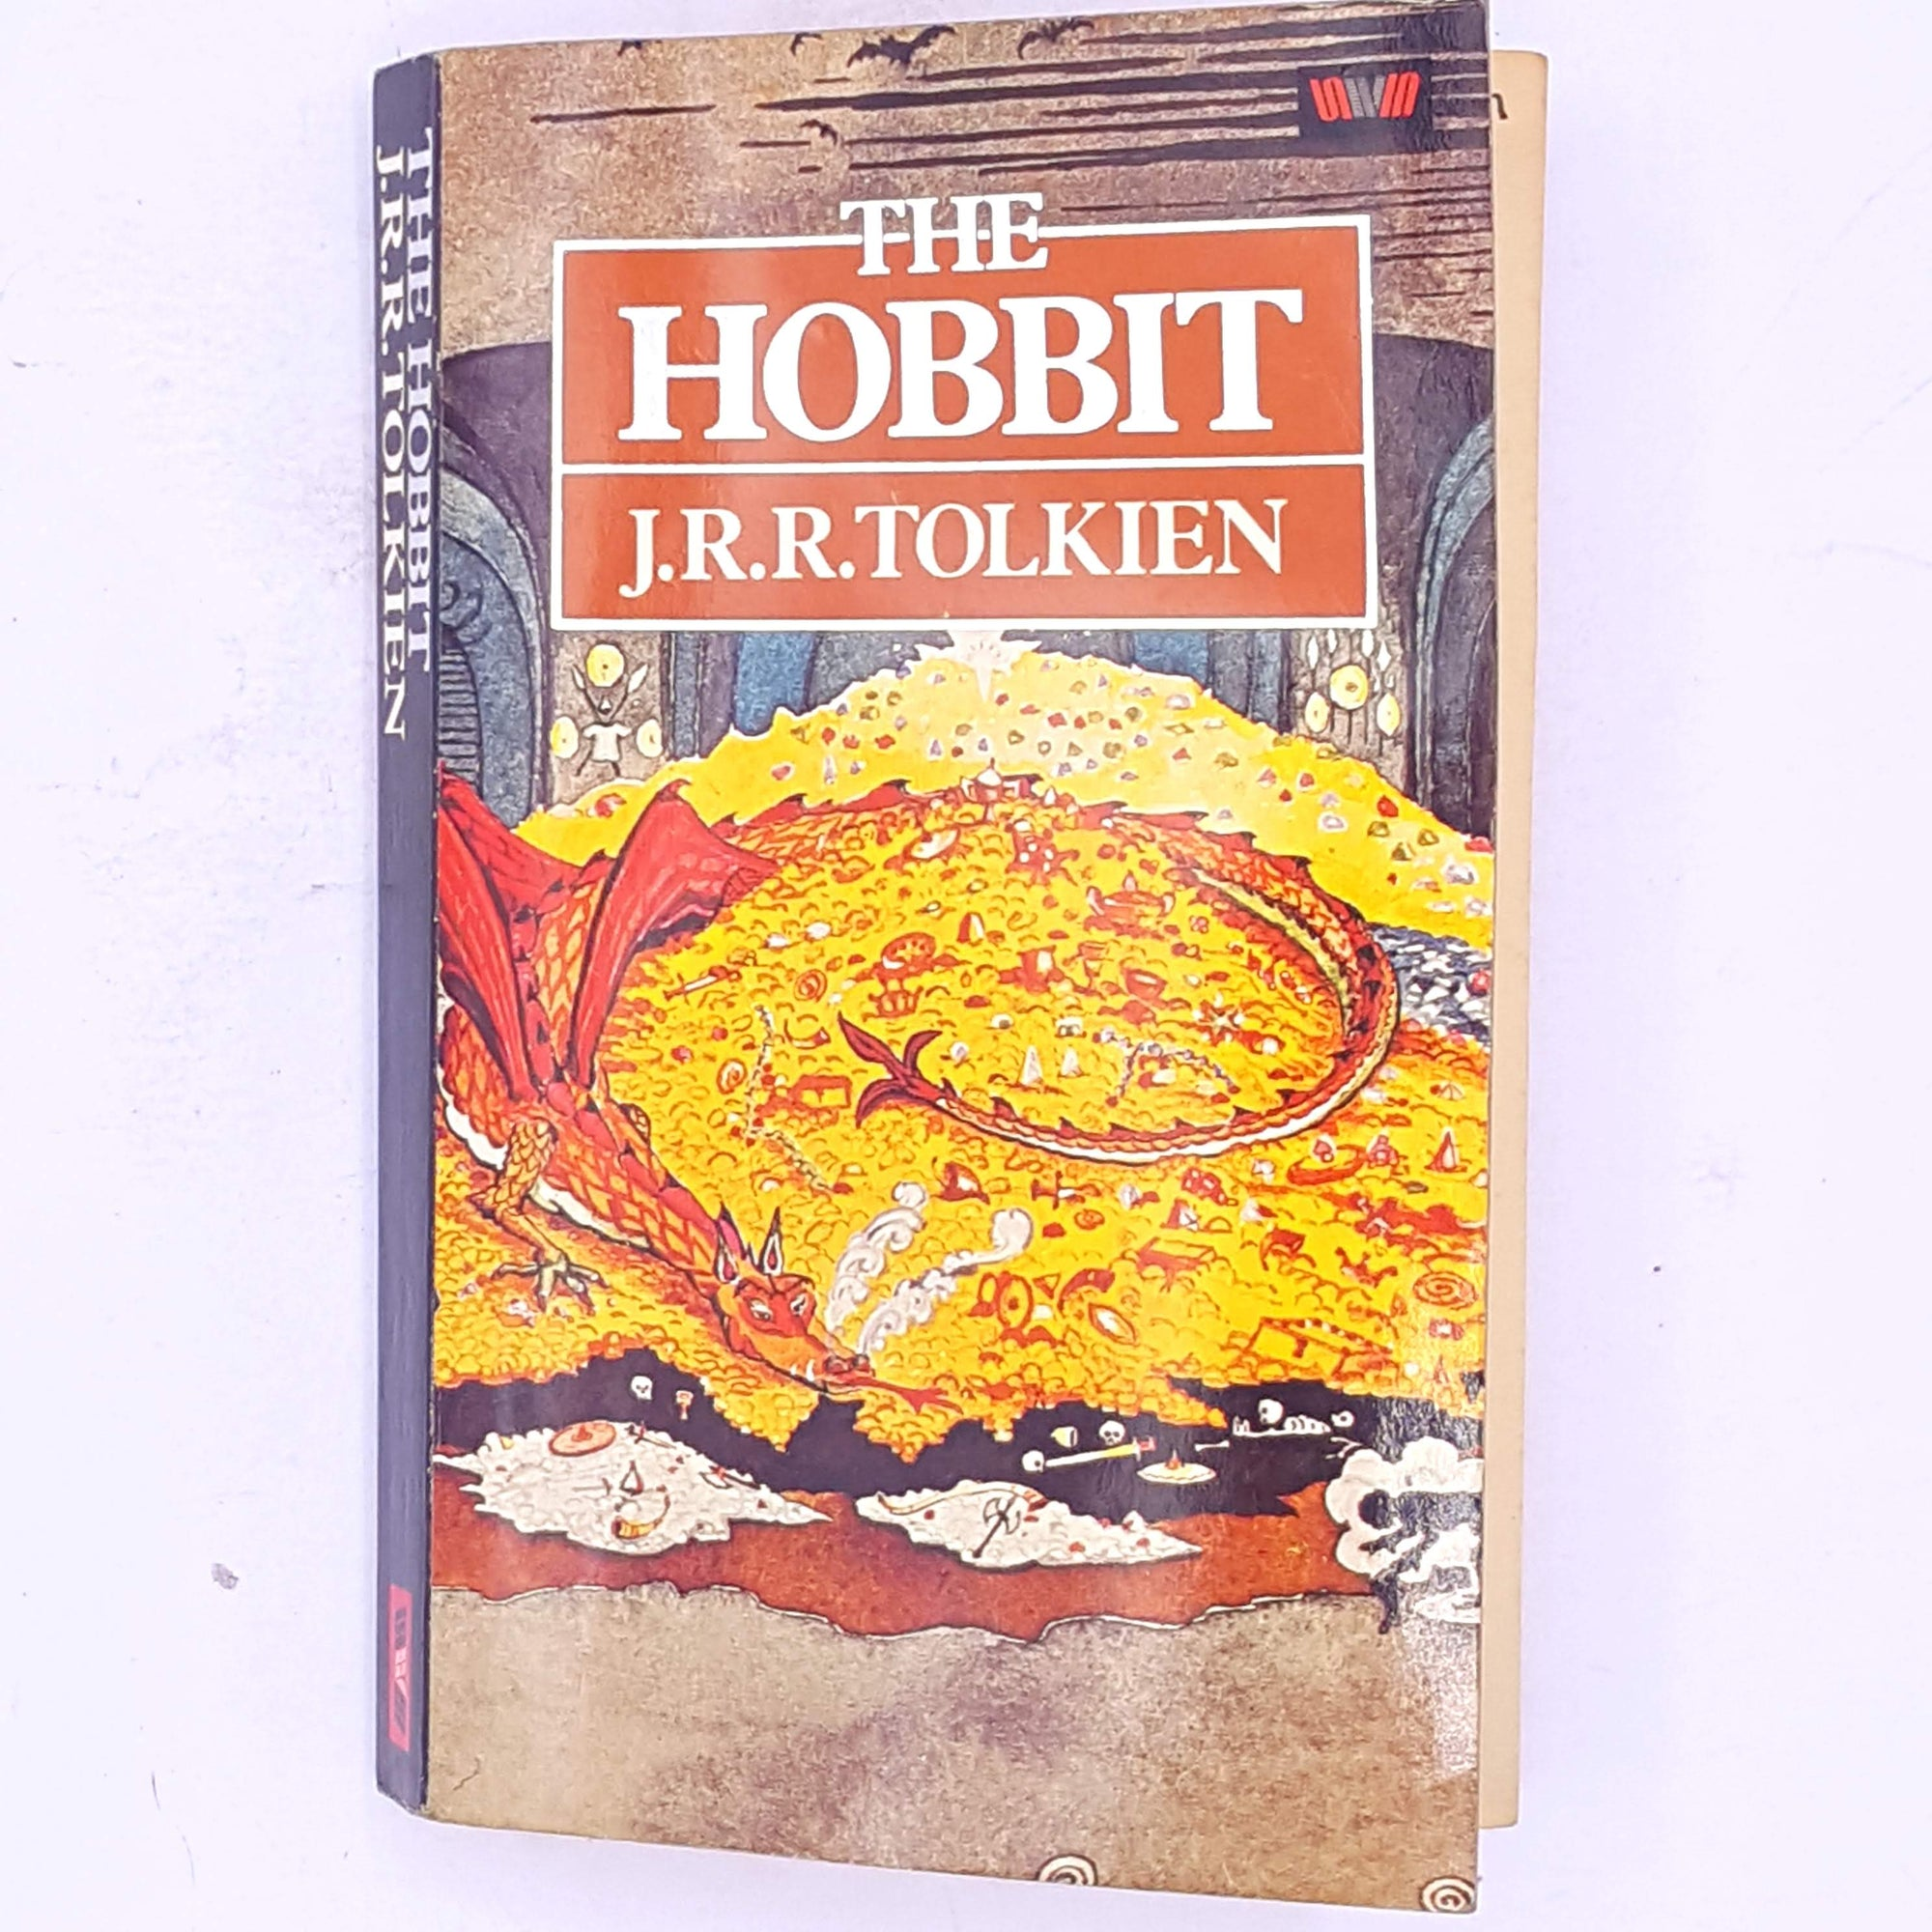 The Hobbit by J.R.R. Tolkien 1983